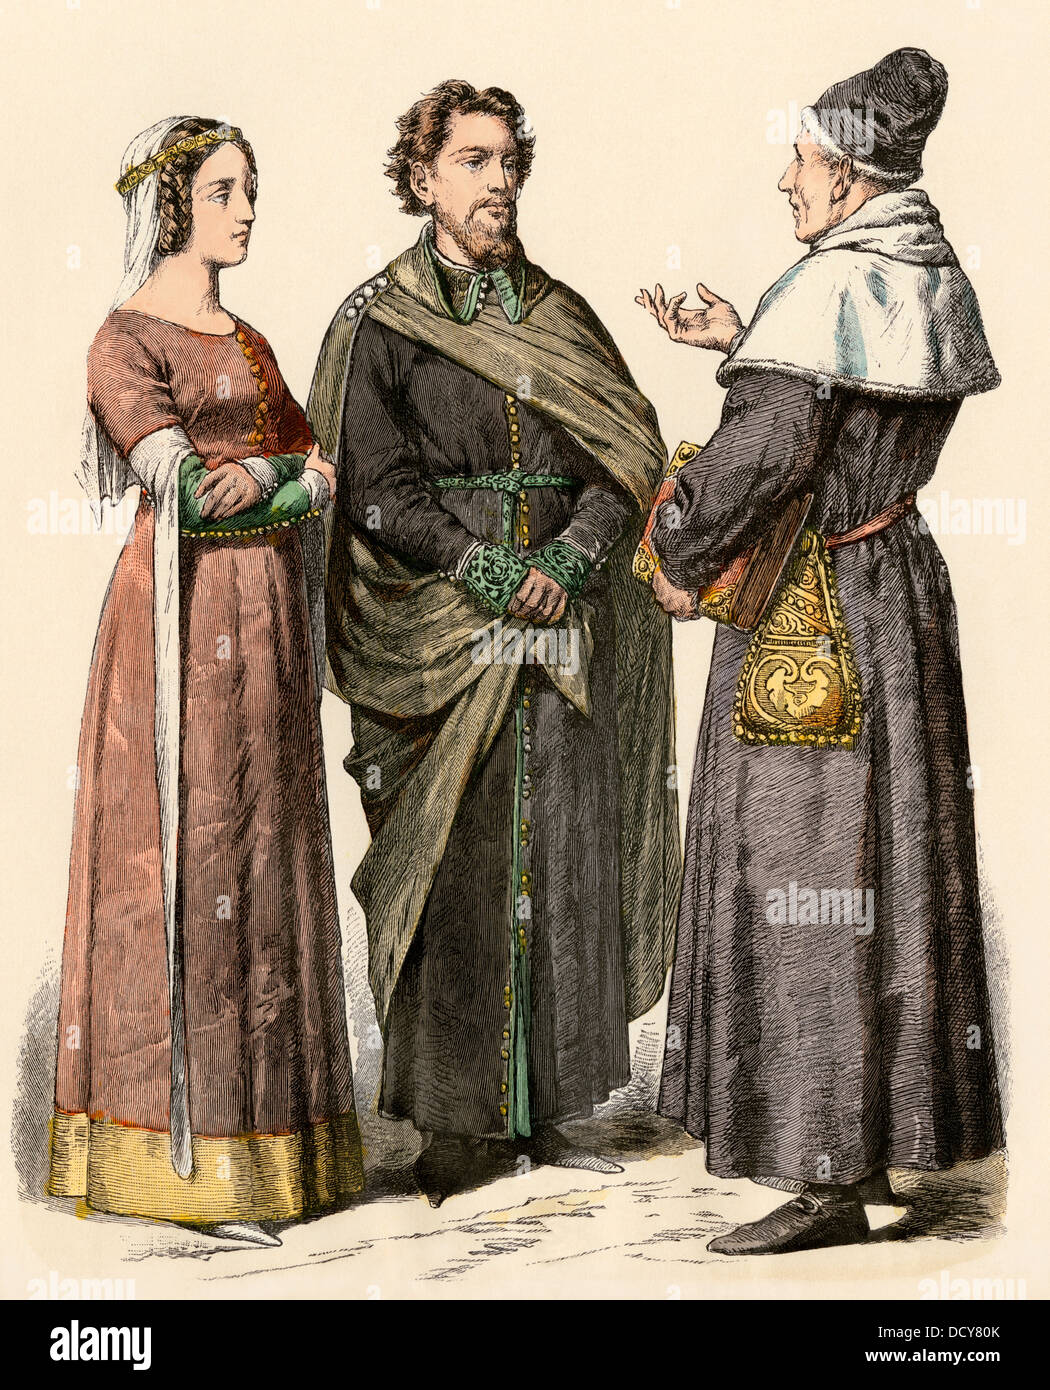 Middle-class European couple and a scholar in the 1300s. Hand-colored print - Stock Image